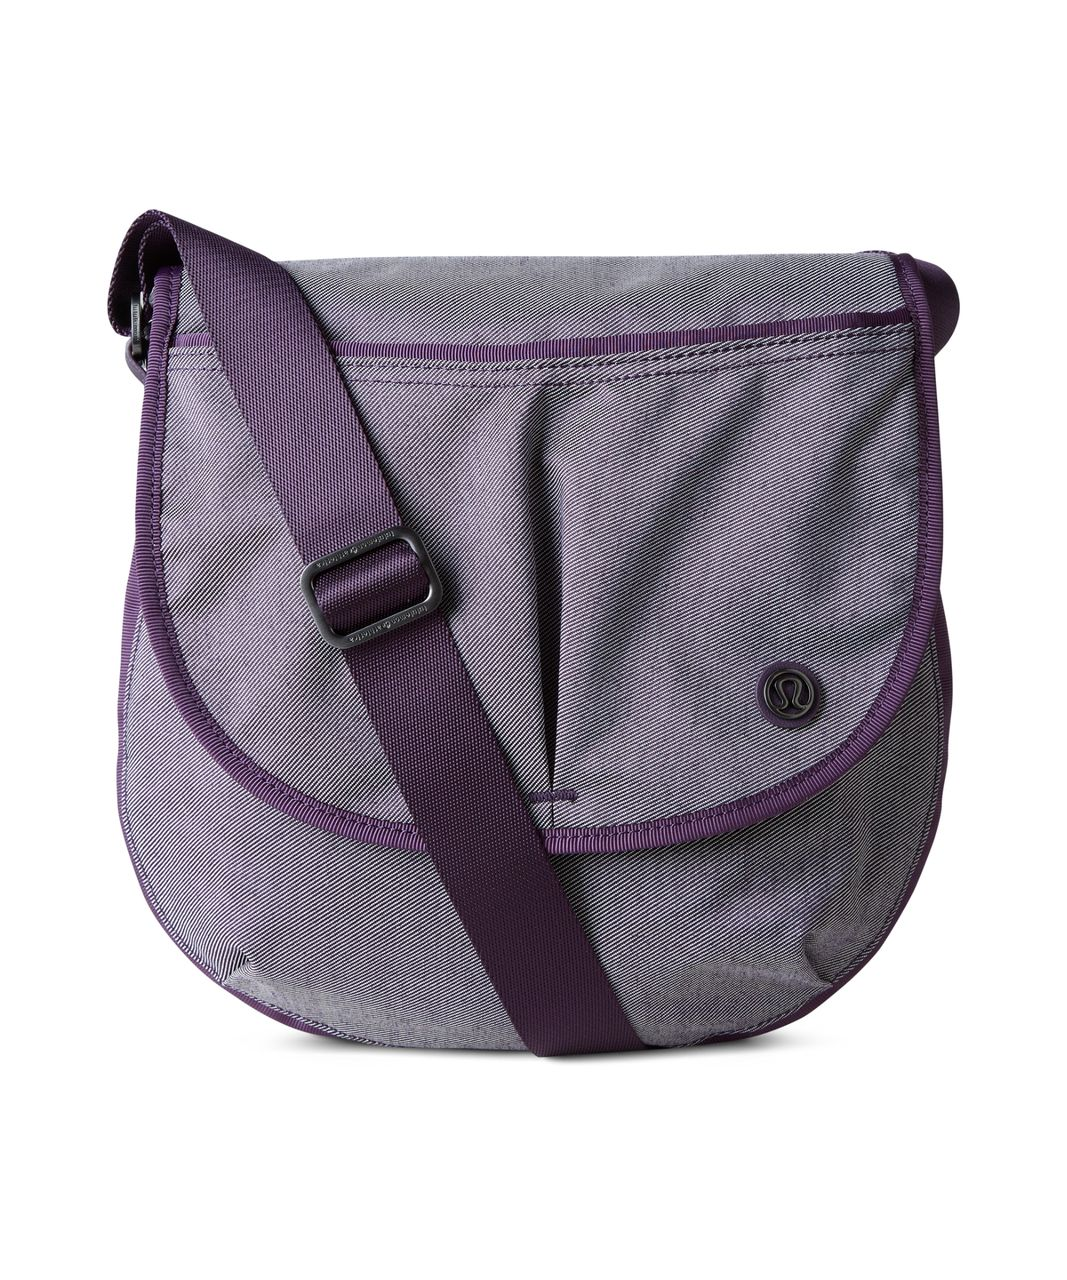 Lululemon The Essentials Bag - Deep Zinfandel / White